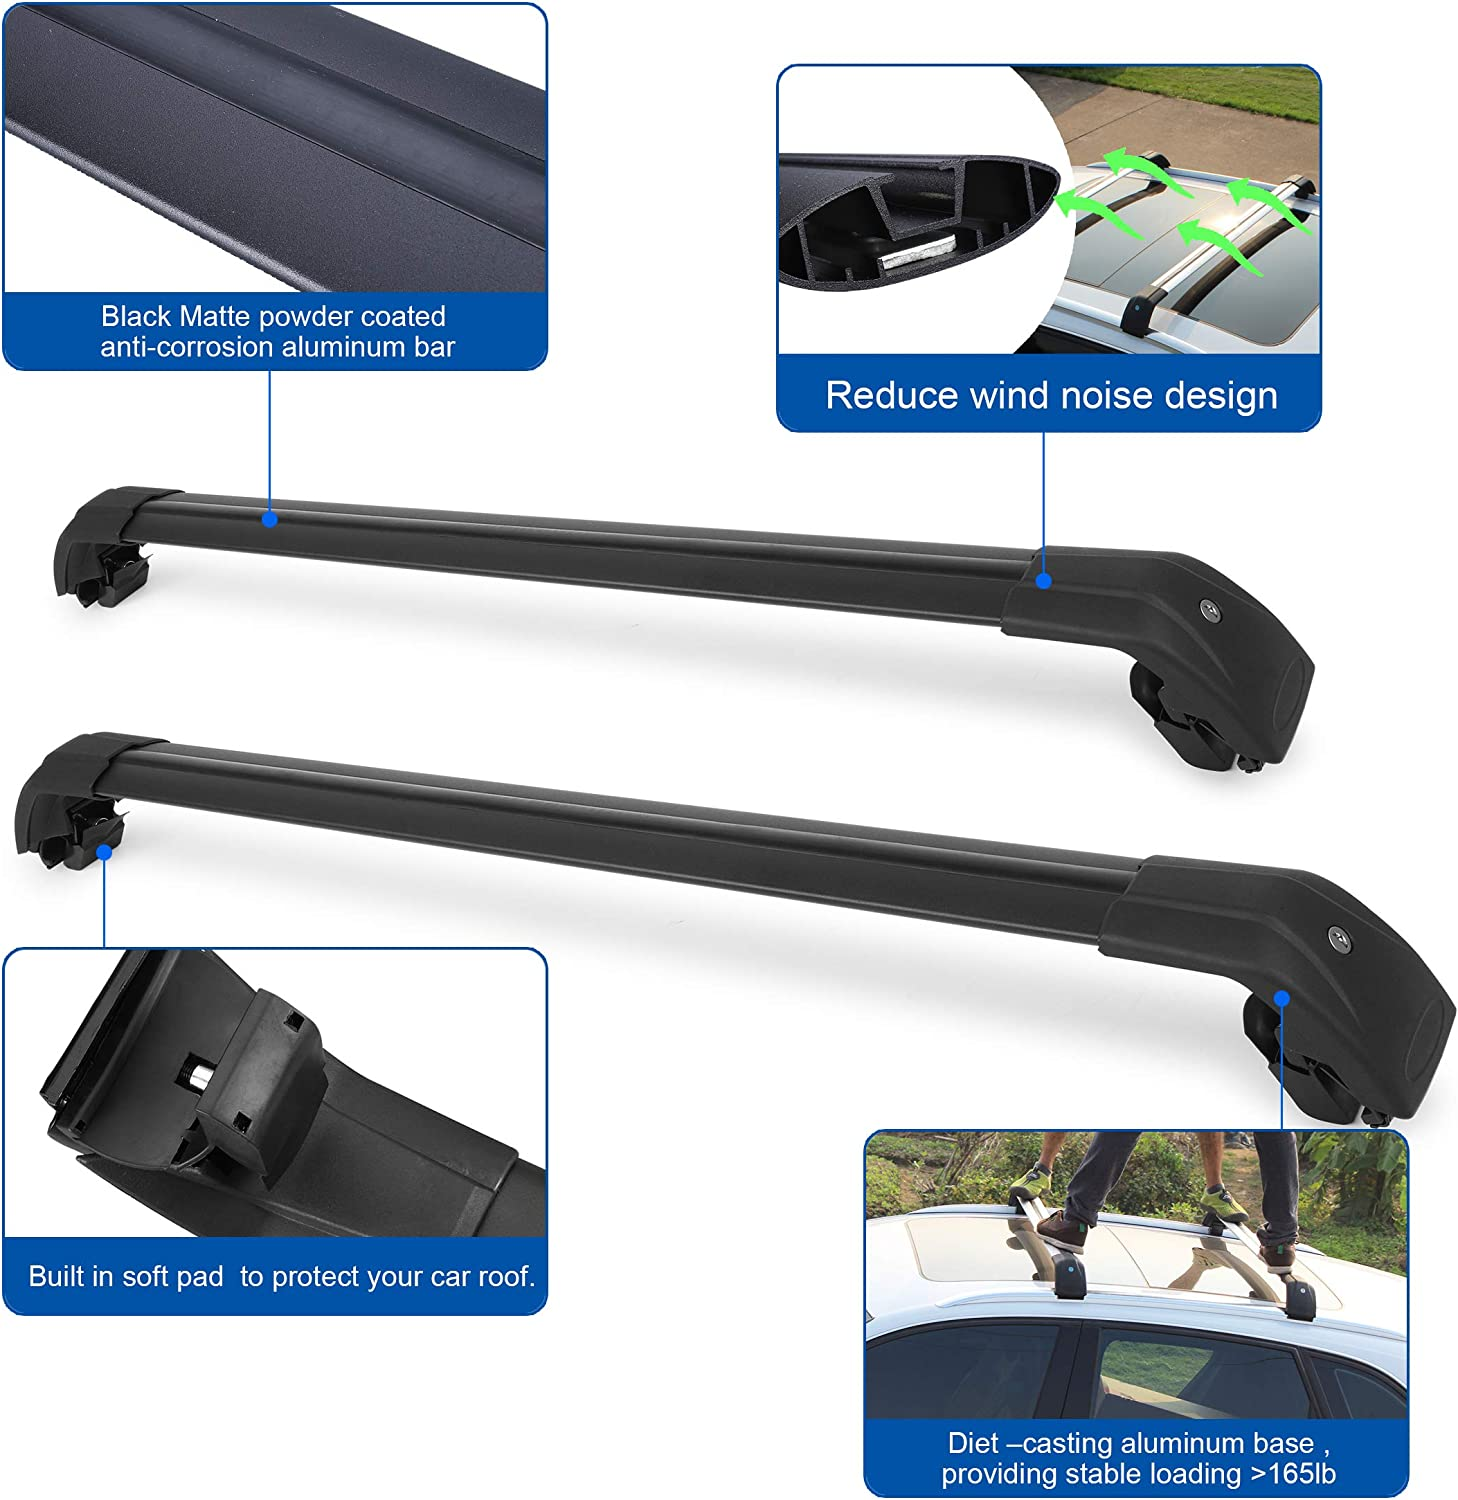 Autekcomma Roof Rack Cross Bars for Volvo XC40 2020 Aircraft Aluminum Black Matte with Anti-Theft Locks Max Loading Up to 260 LB